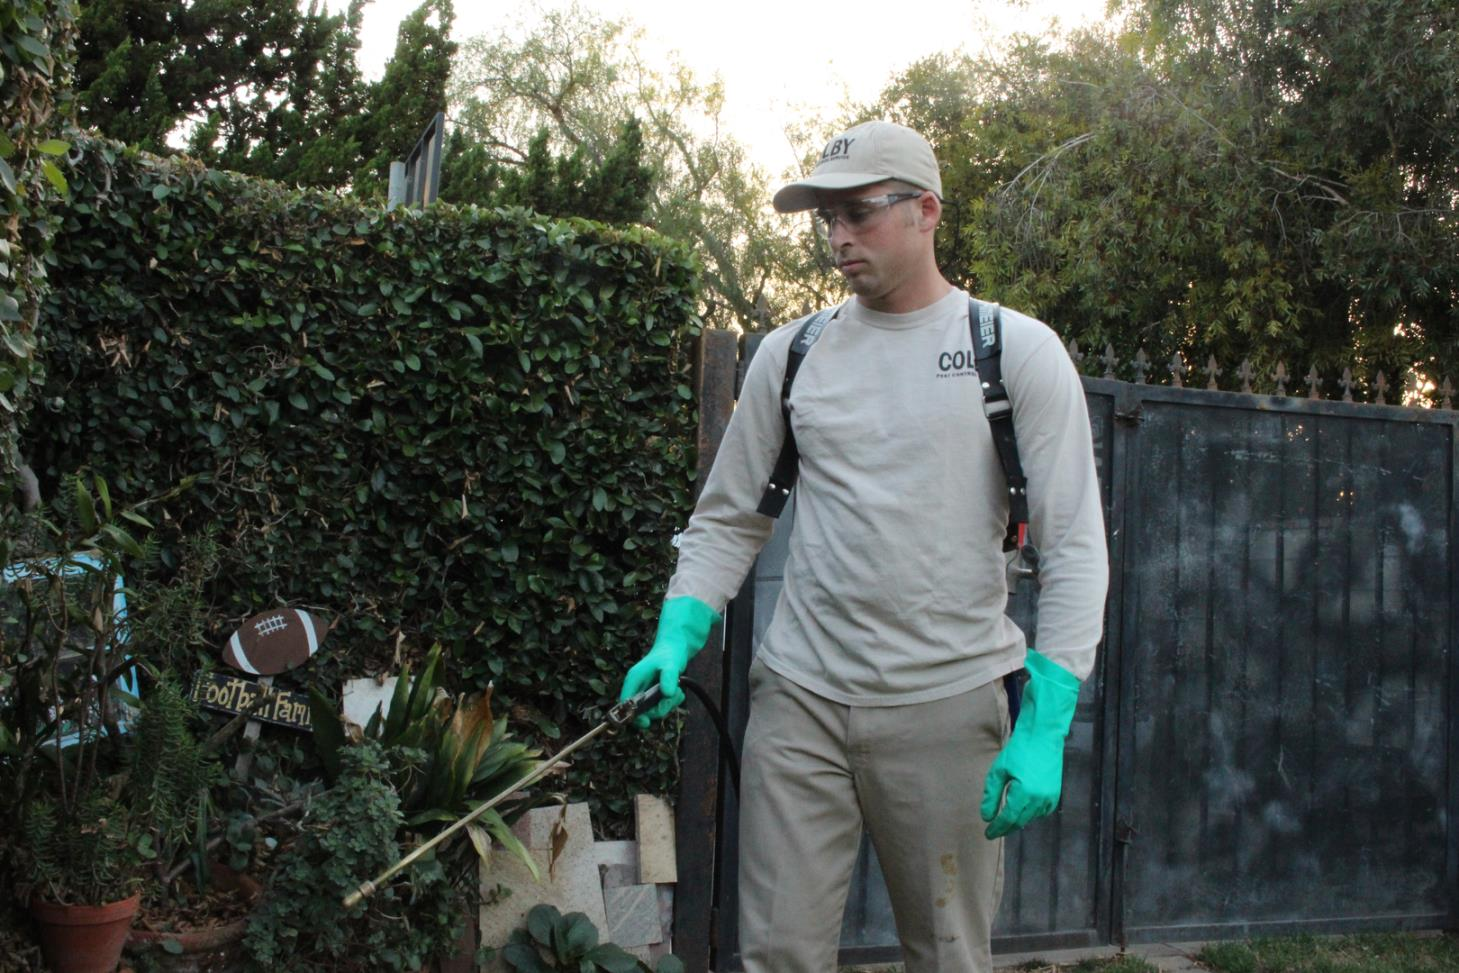 Colby Pest Control Service image 1